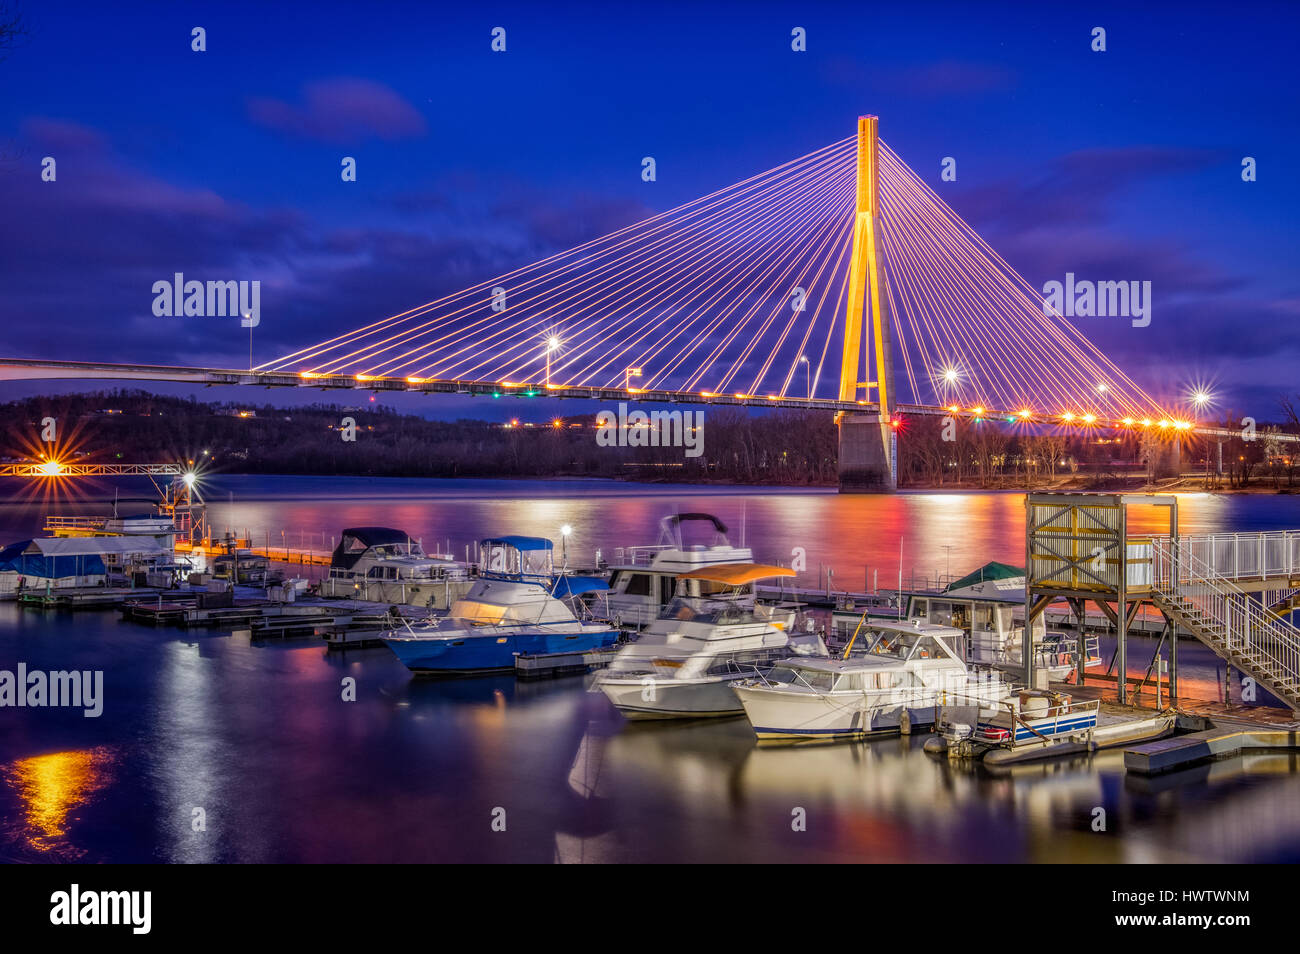 The suspension bridge spanning the Ohio River from Huntington, West Virginia at night. Stock Photo